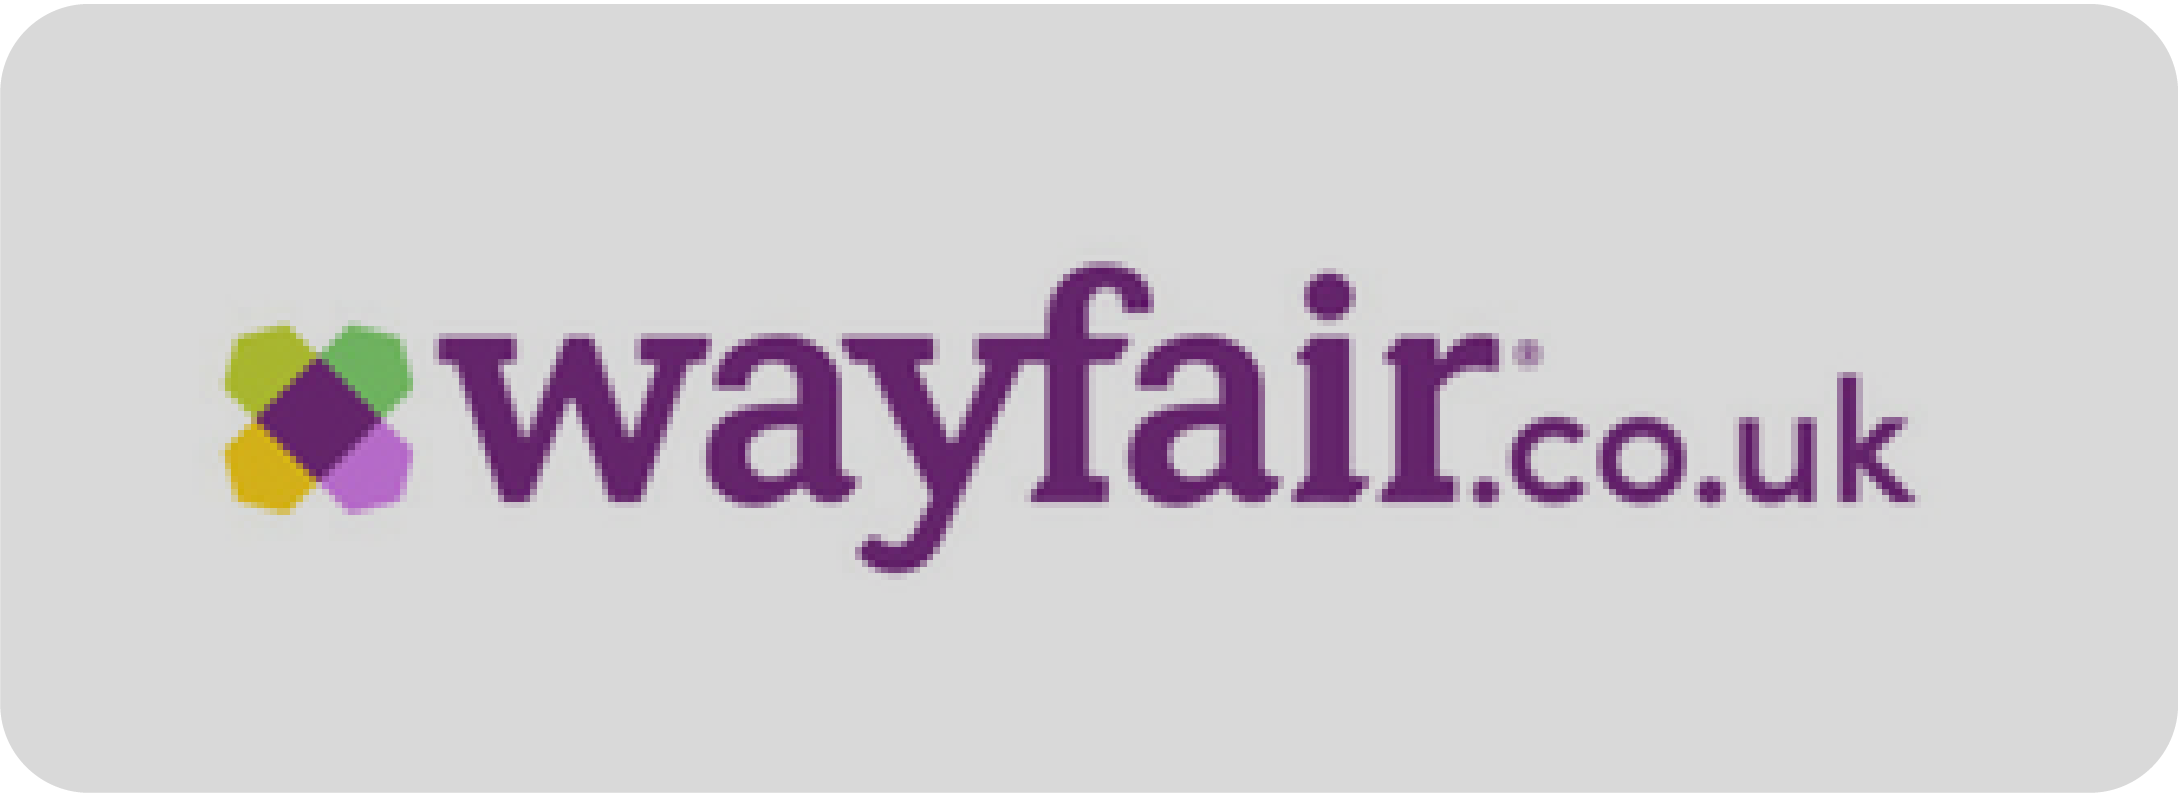 Connected Group Ltd Website Assets_wayfair co uk.png